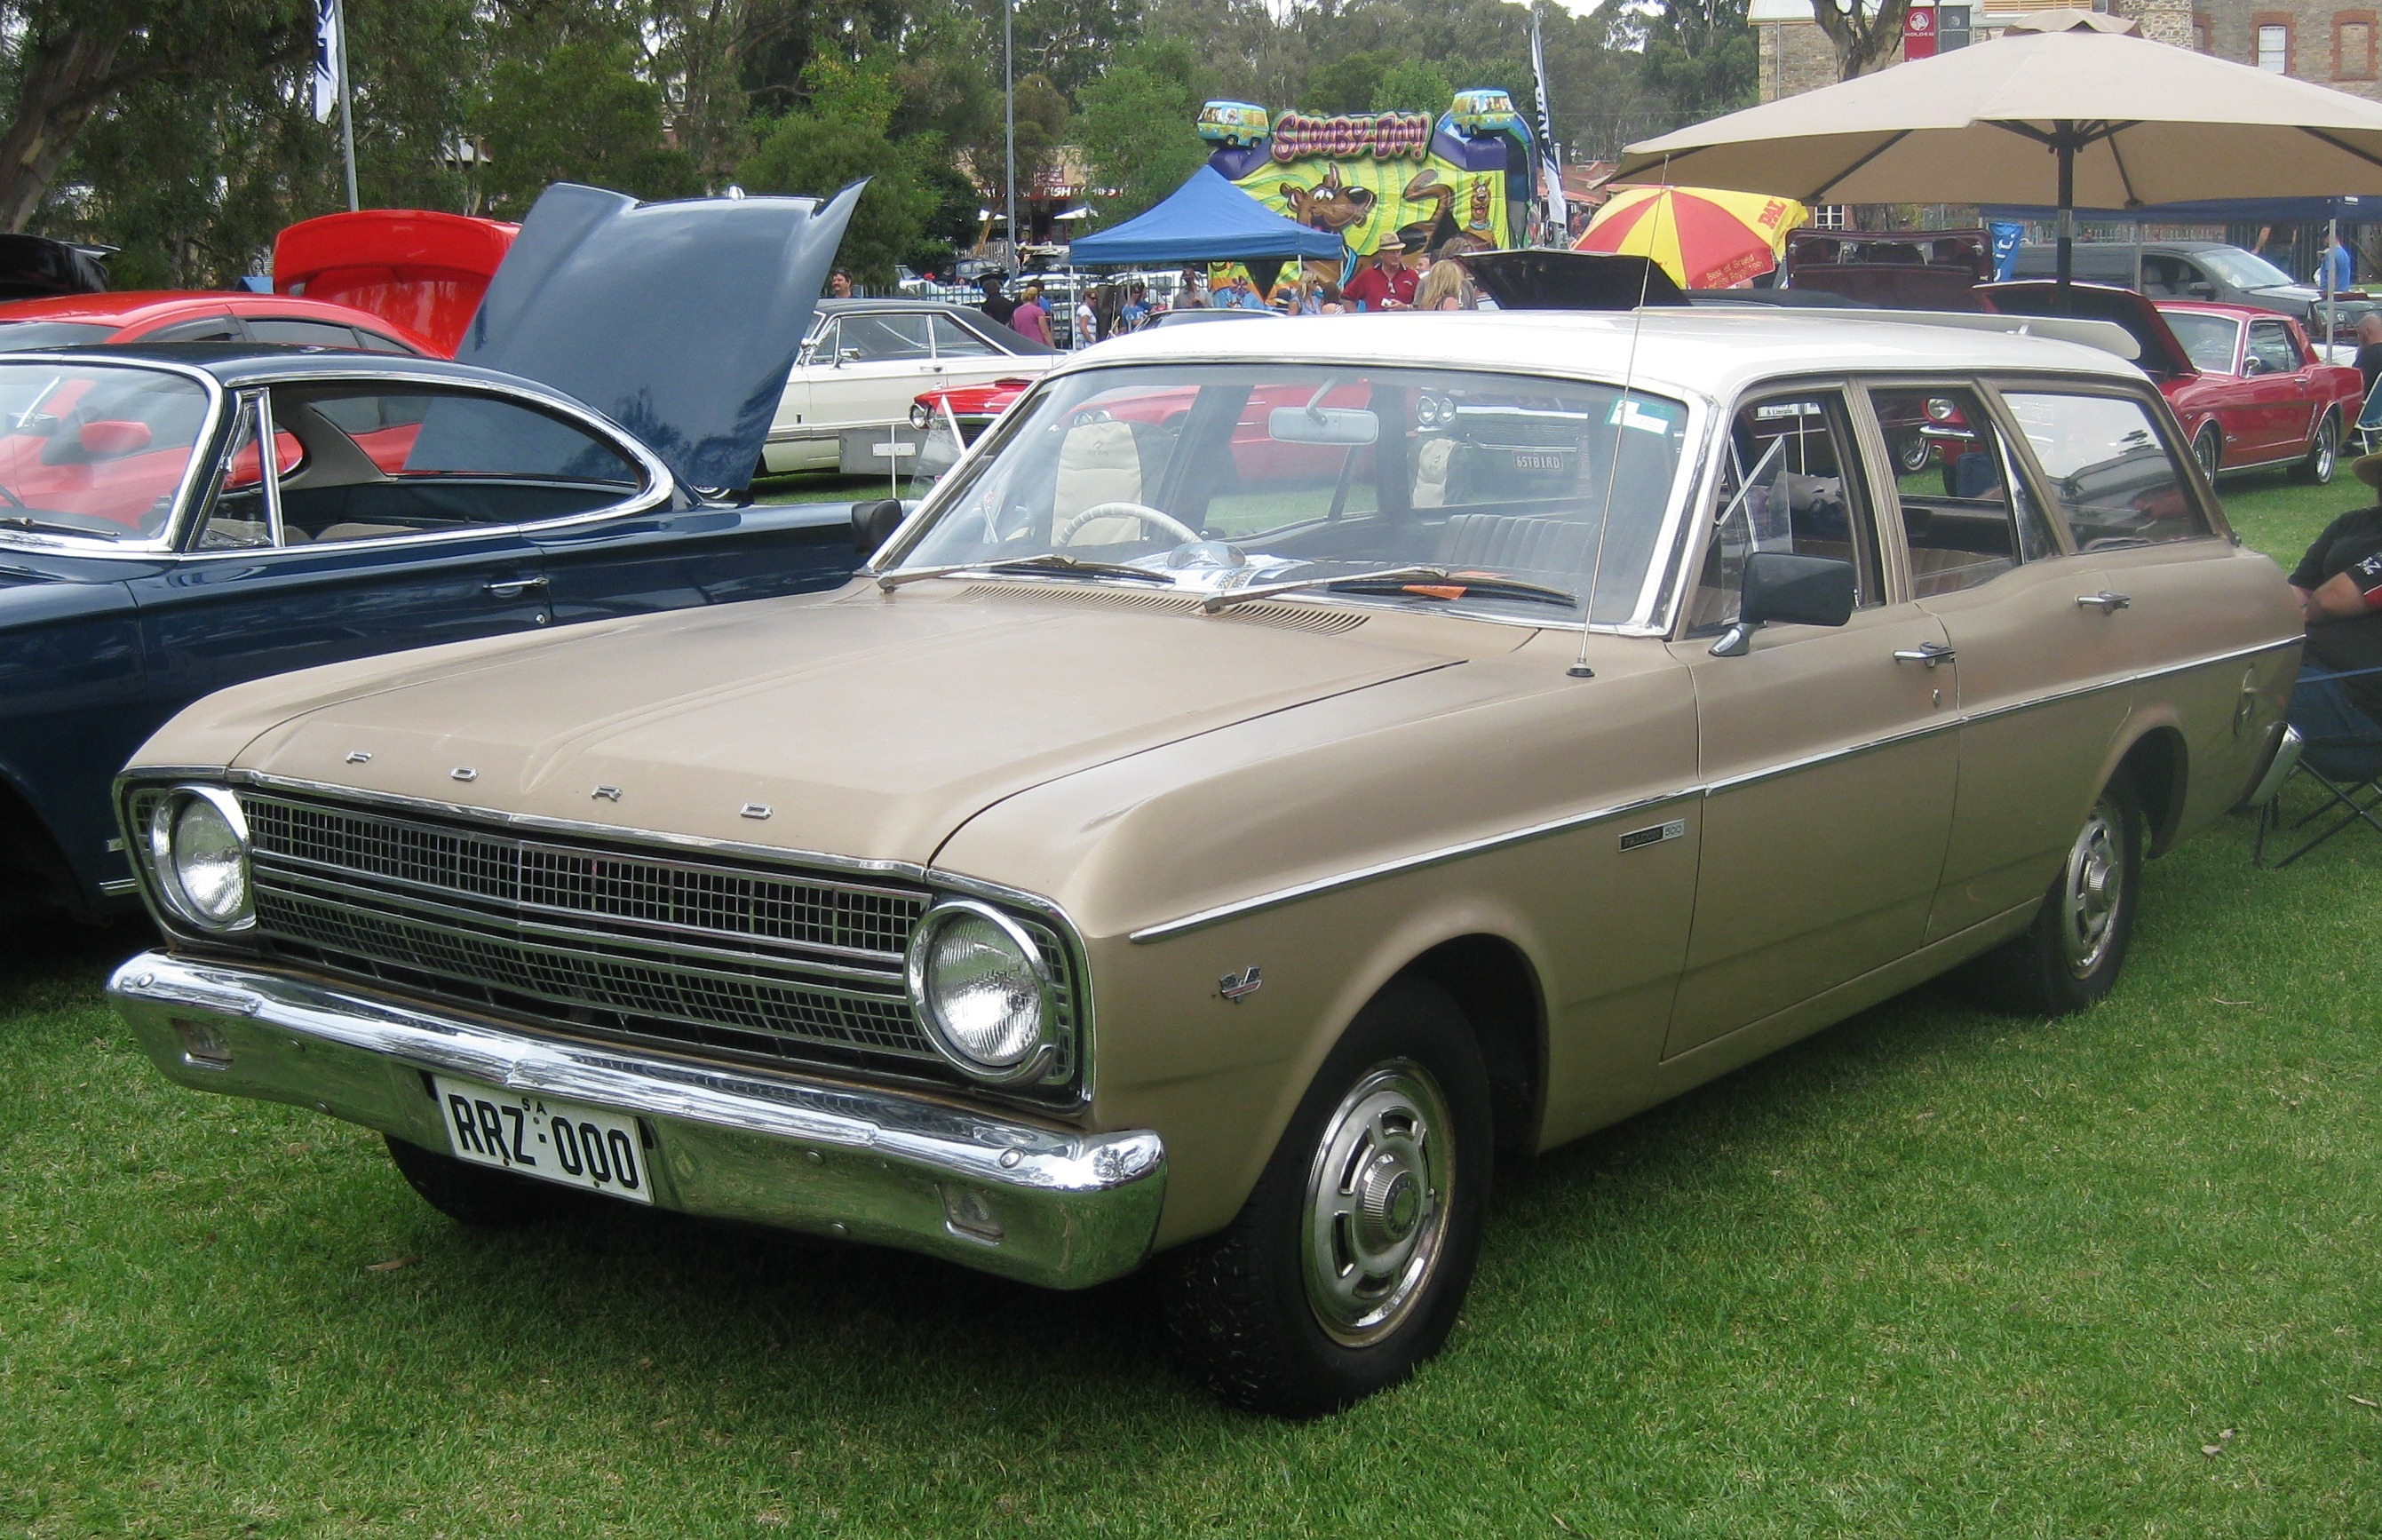 File:Ford XR Falcon 500 Station Wagon.jpg - Wikimedia Commons